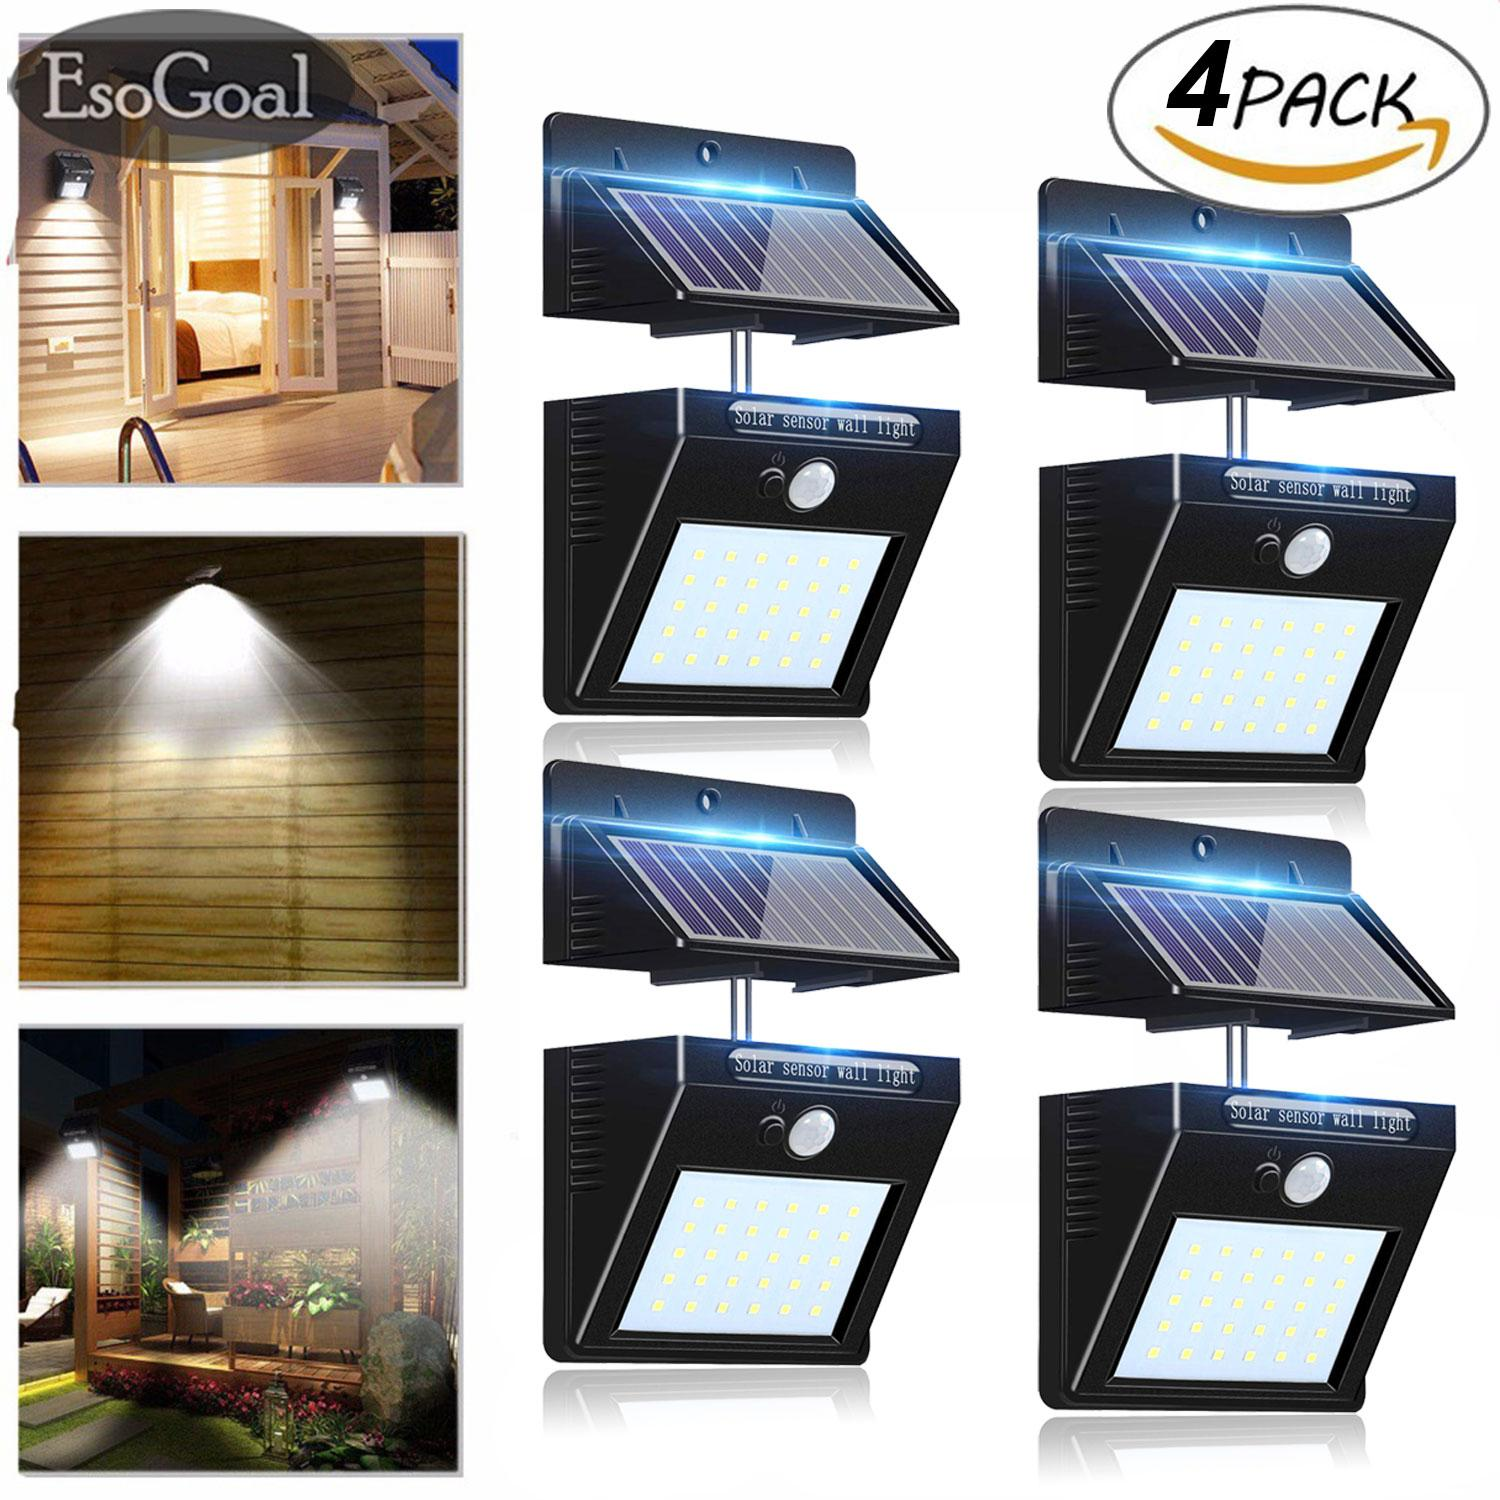 EsoGoal Outdoor Lighting Sensor Solar Wall light 30 LED Solar Lights with Separable Solar Panel Waterproof Solar Powered Motion Sensor Light Wireless Security Lights Outside Wall Lamp for Driveway Patio Garden Path (4 Pack)